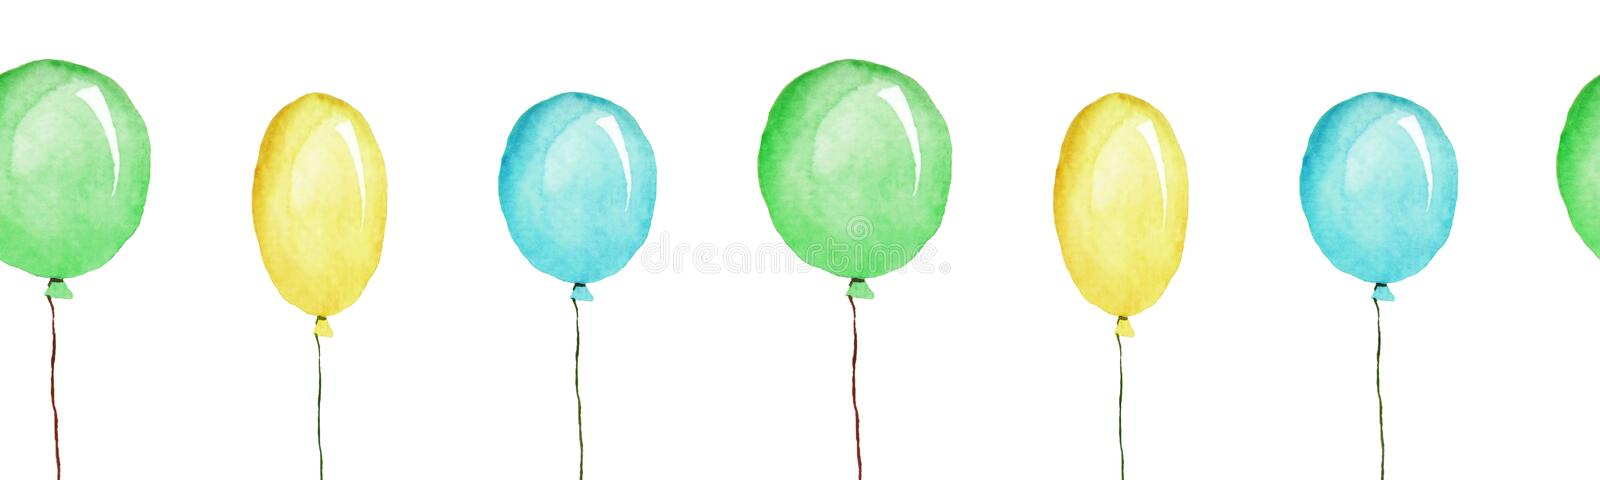 Les ballons multicolores, patternn sans couture, illustration d'aquarelle ont isolé illustration de vecteur